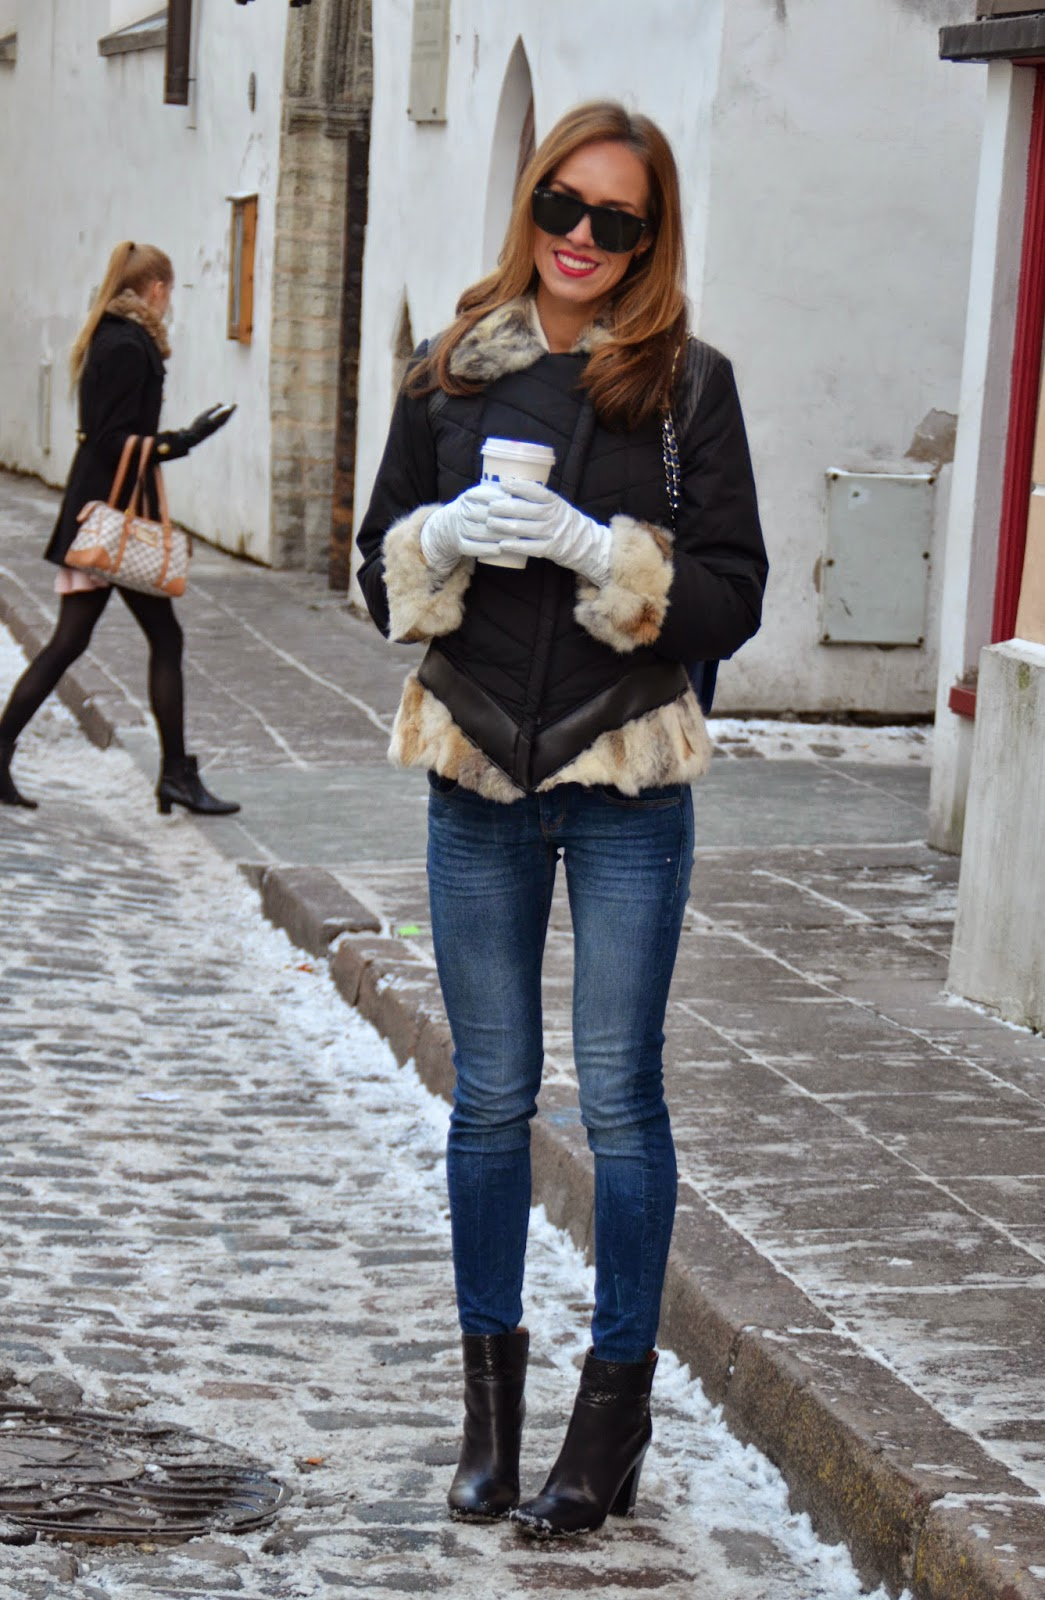 winter-outfit-rino-pelle-fur-coat-guess-jeans-chloe-boots